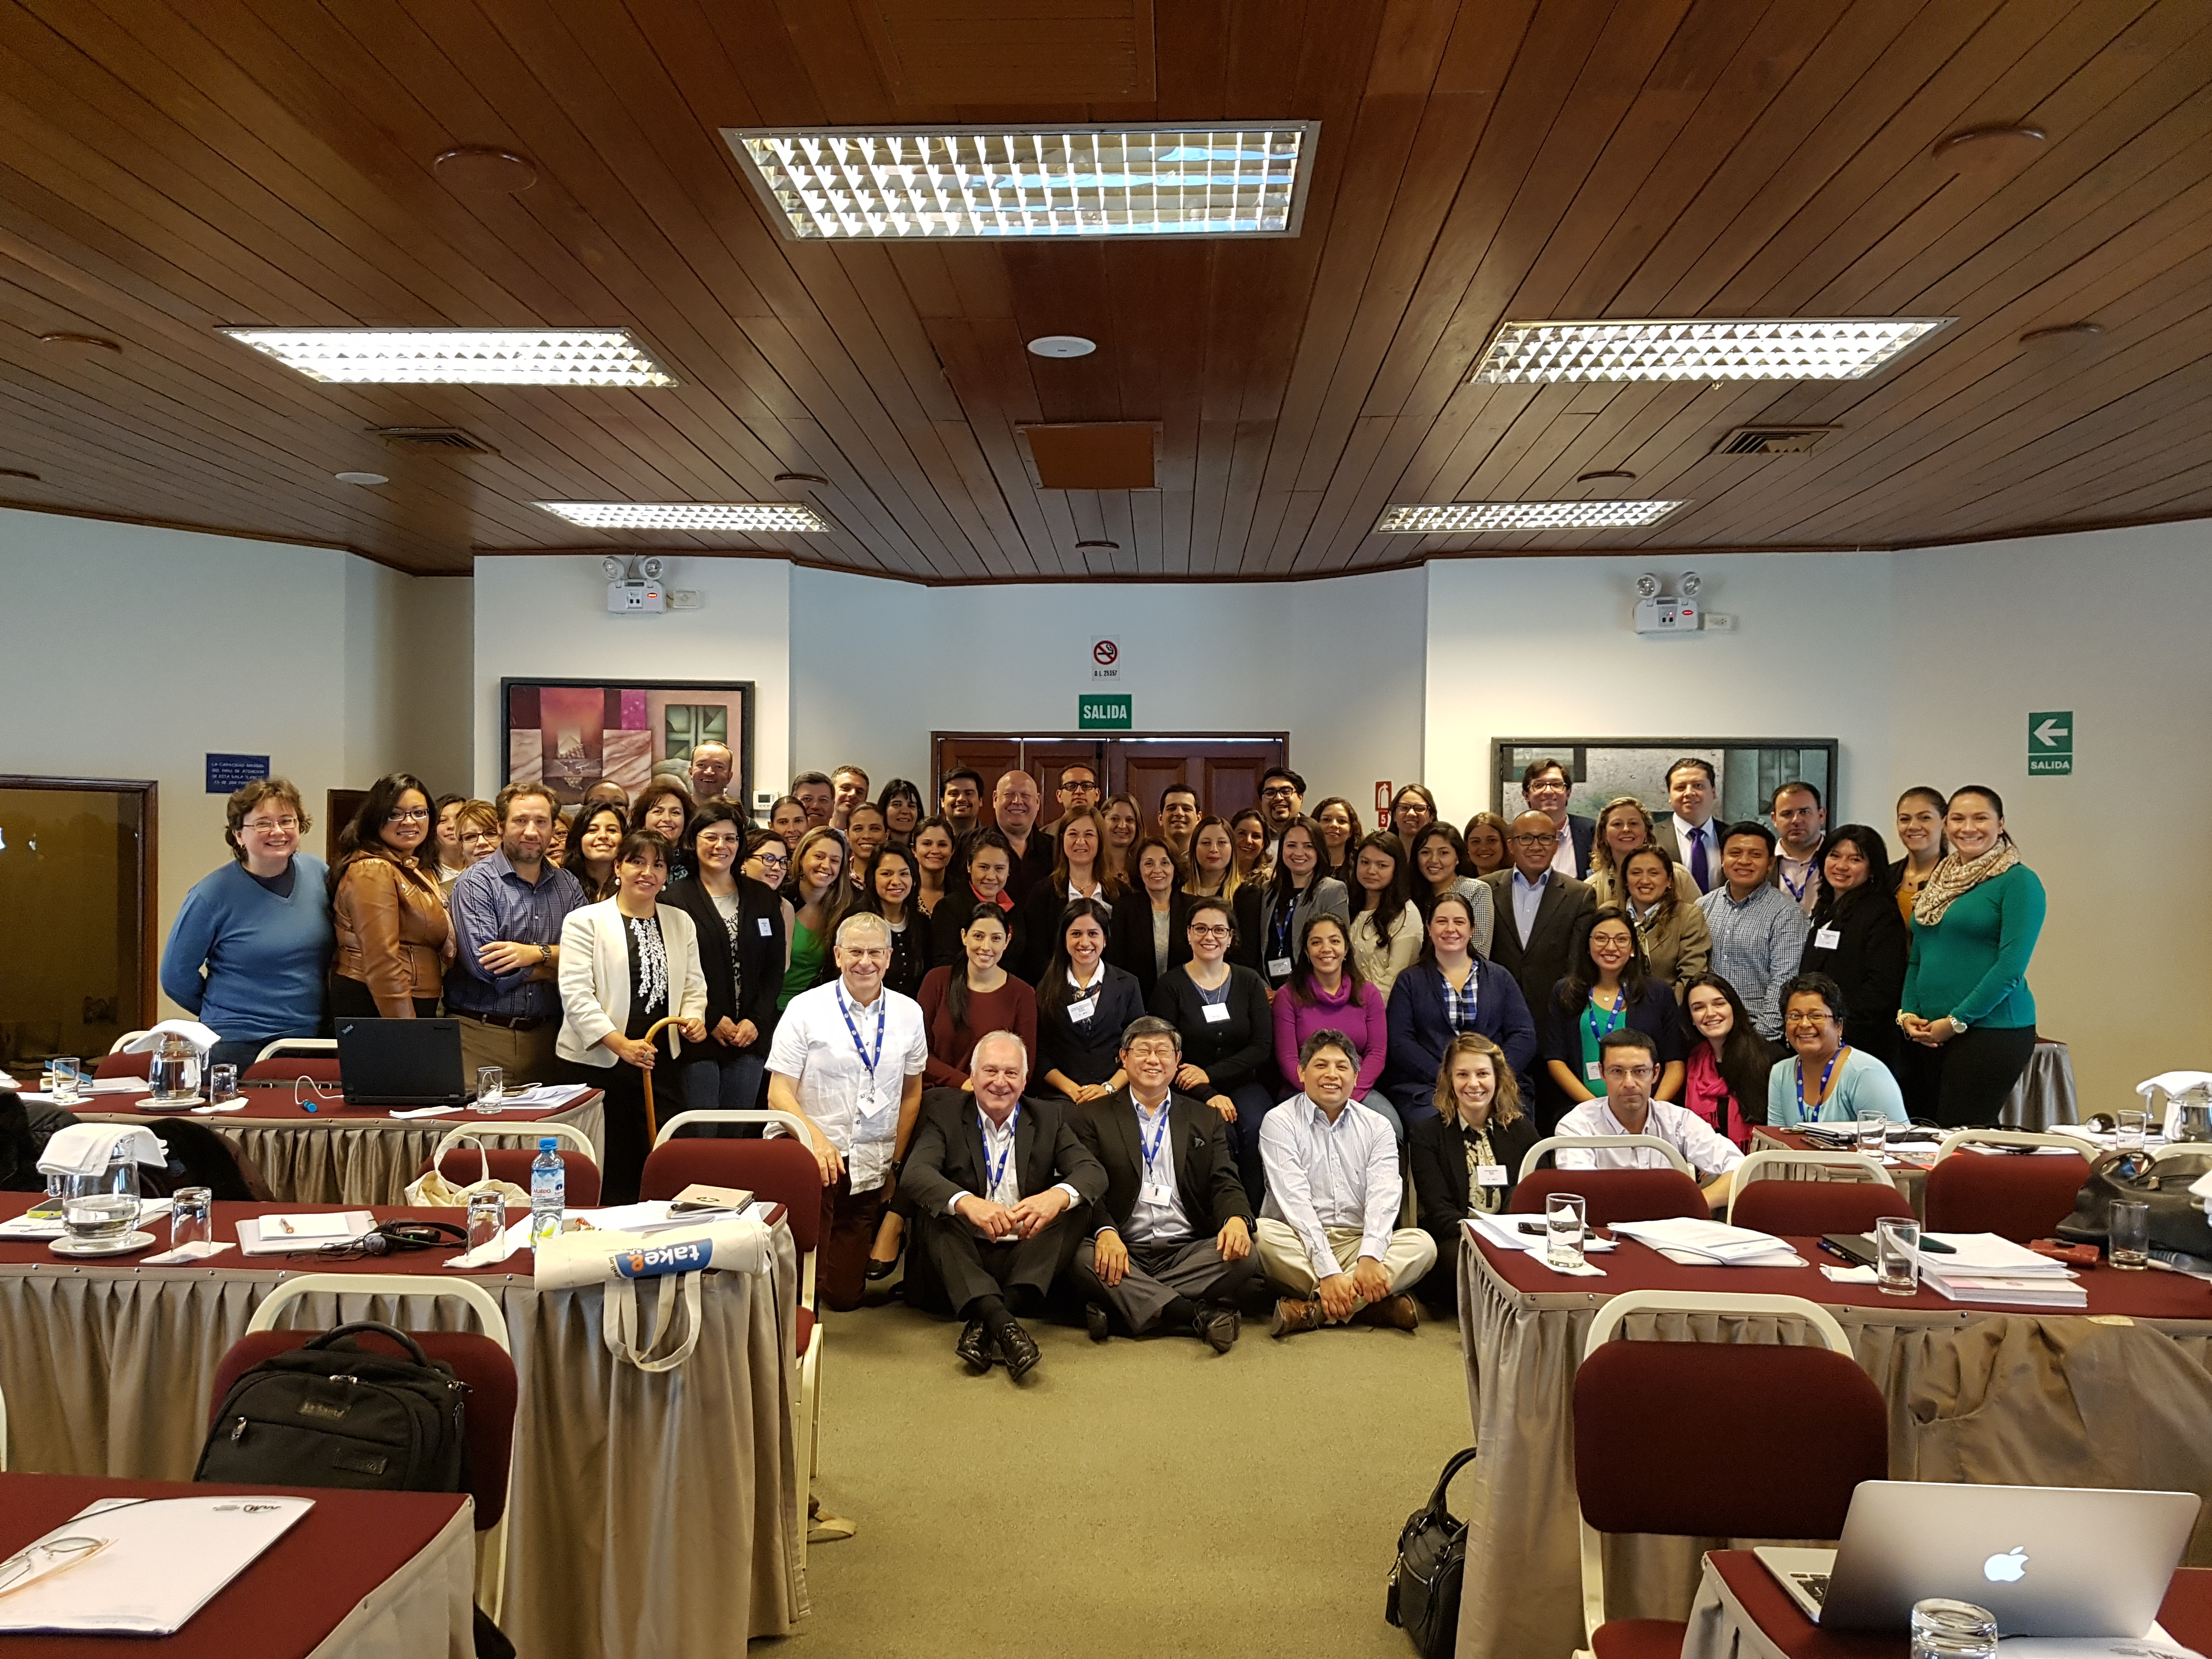 Group photo: Lima, Peru (September 2016)